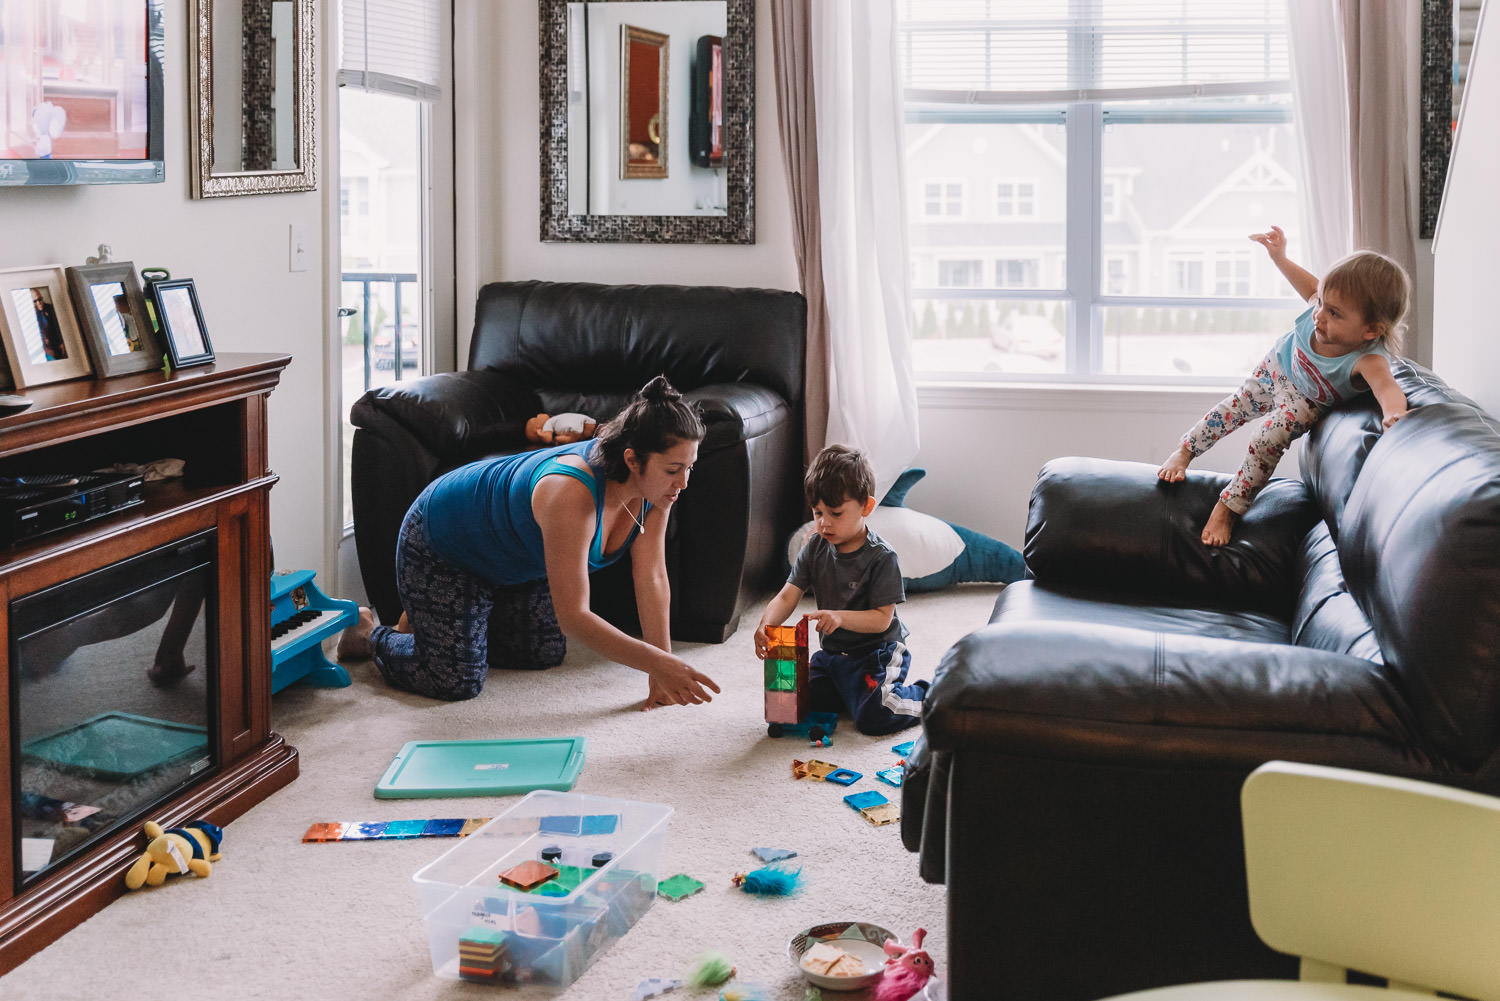 Two children and their mother play in the living room.